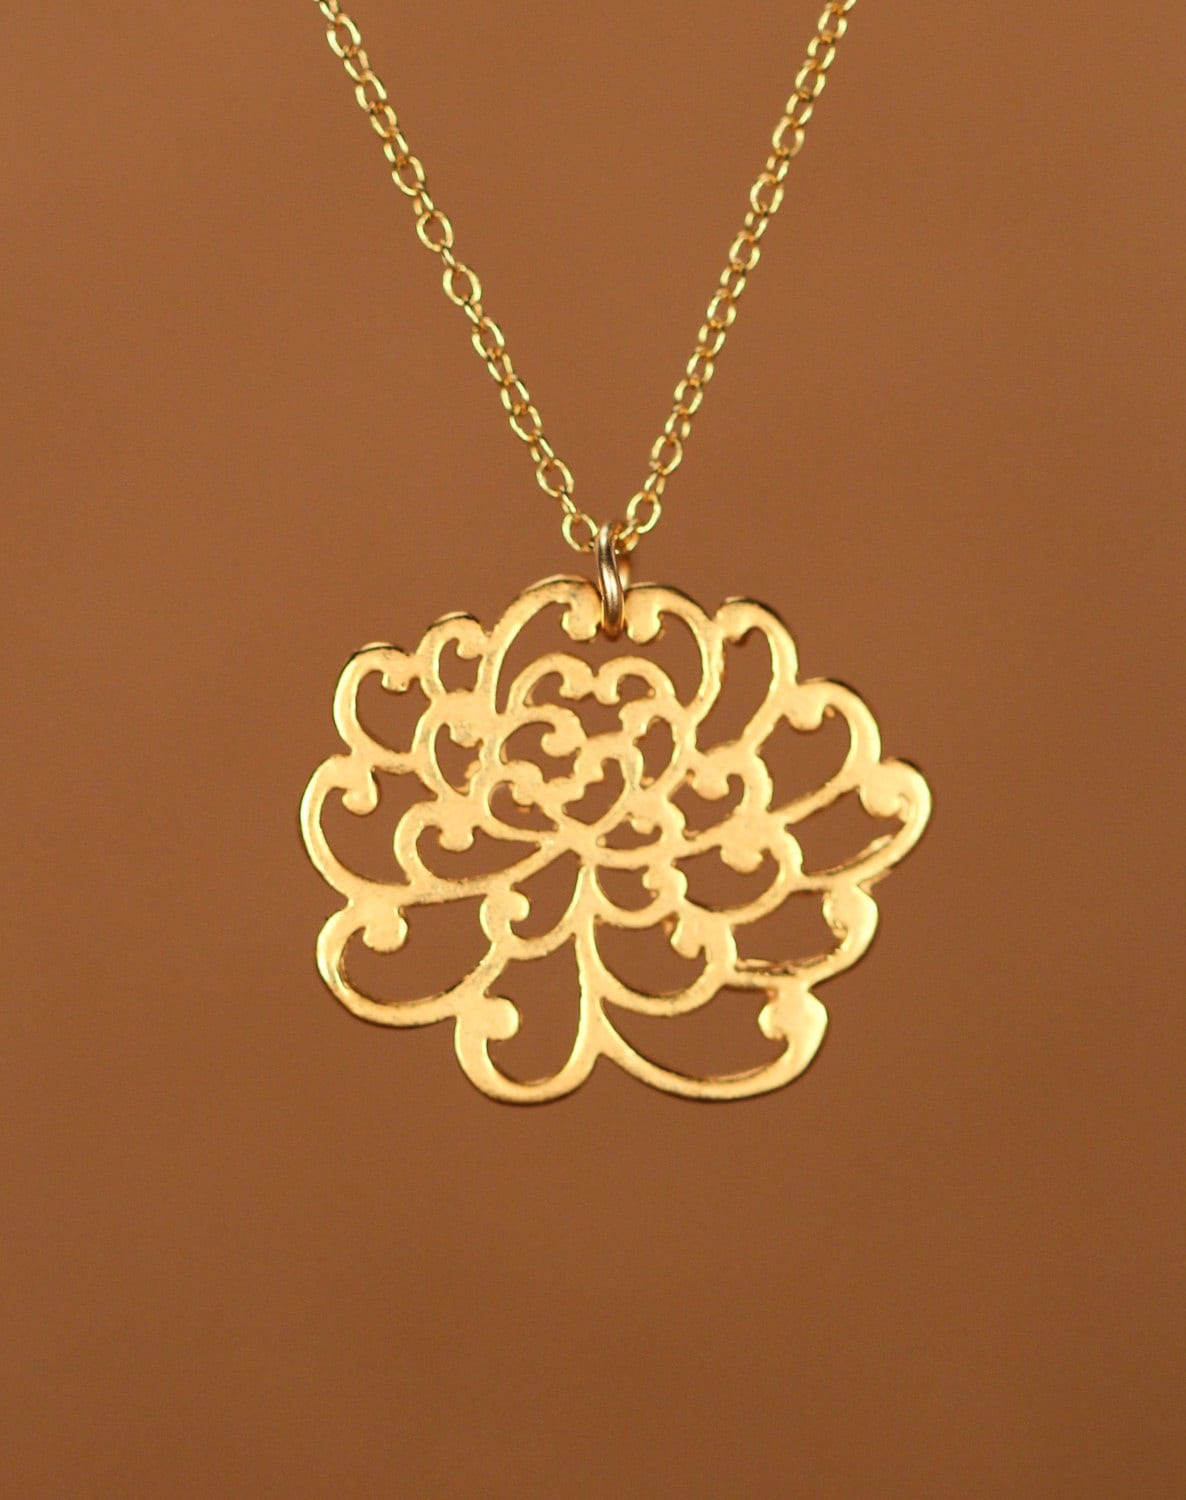 Lotus Necklace Gold Lotus Flower Necklace Yoga Necklace